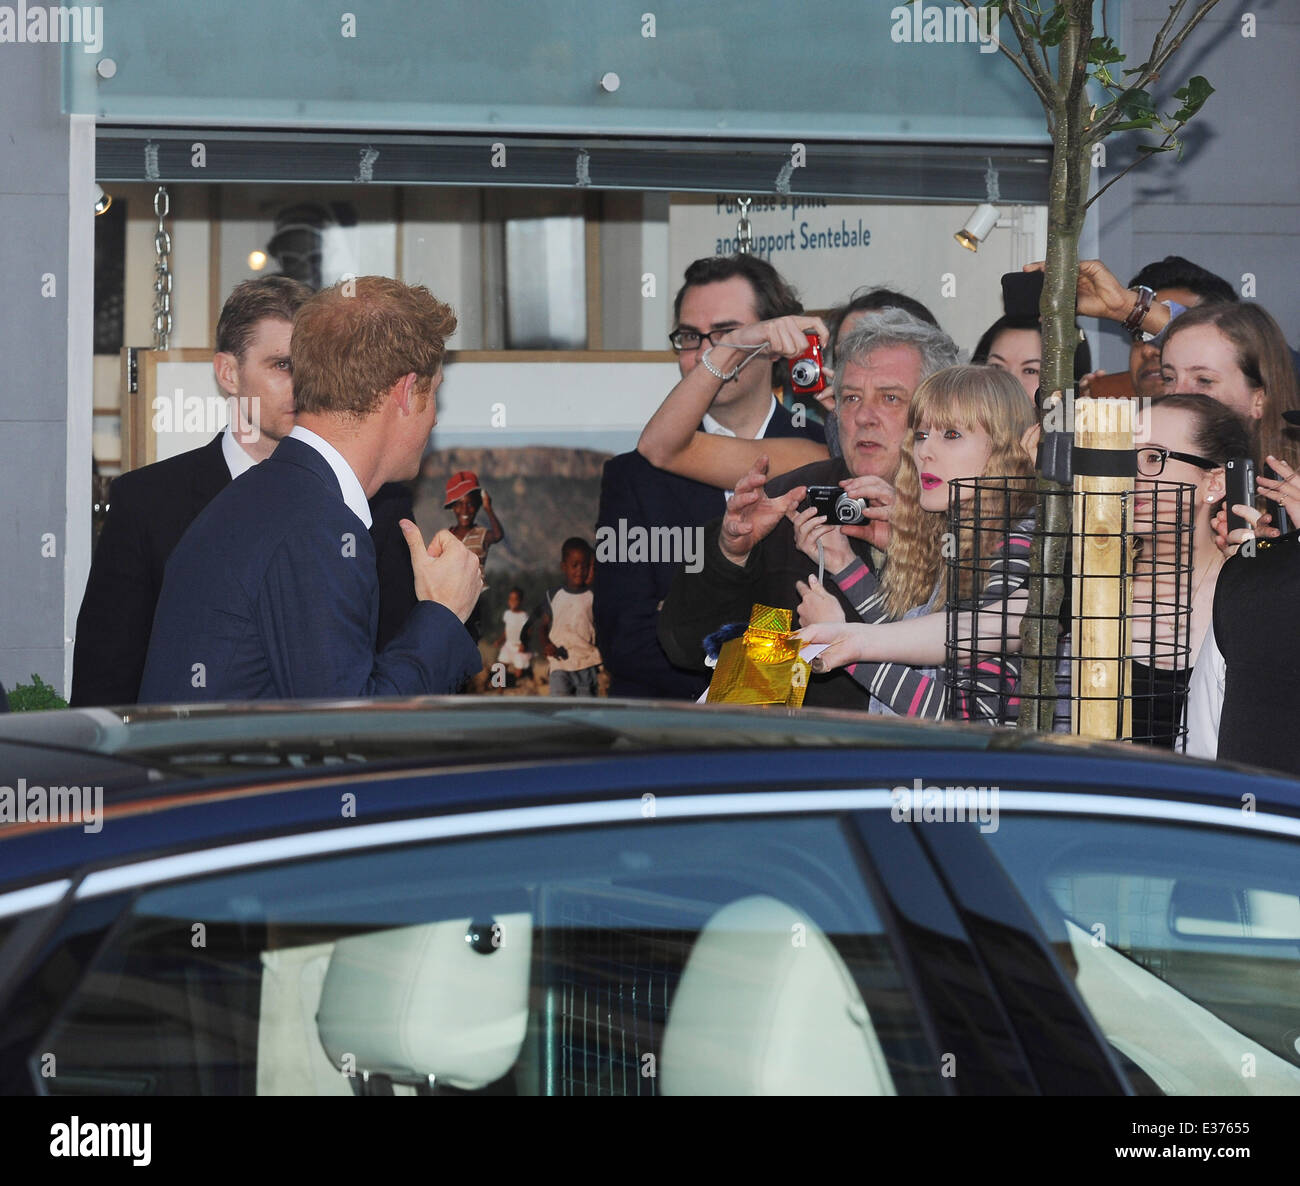 Prince Harry leaves Getty Images Gallery in London and was given a present by a fan for his new nephew Prince George. - Stock Image